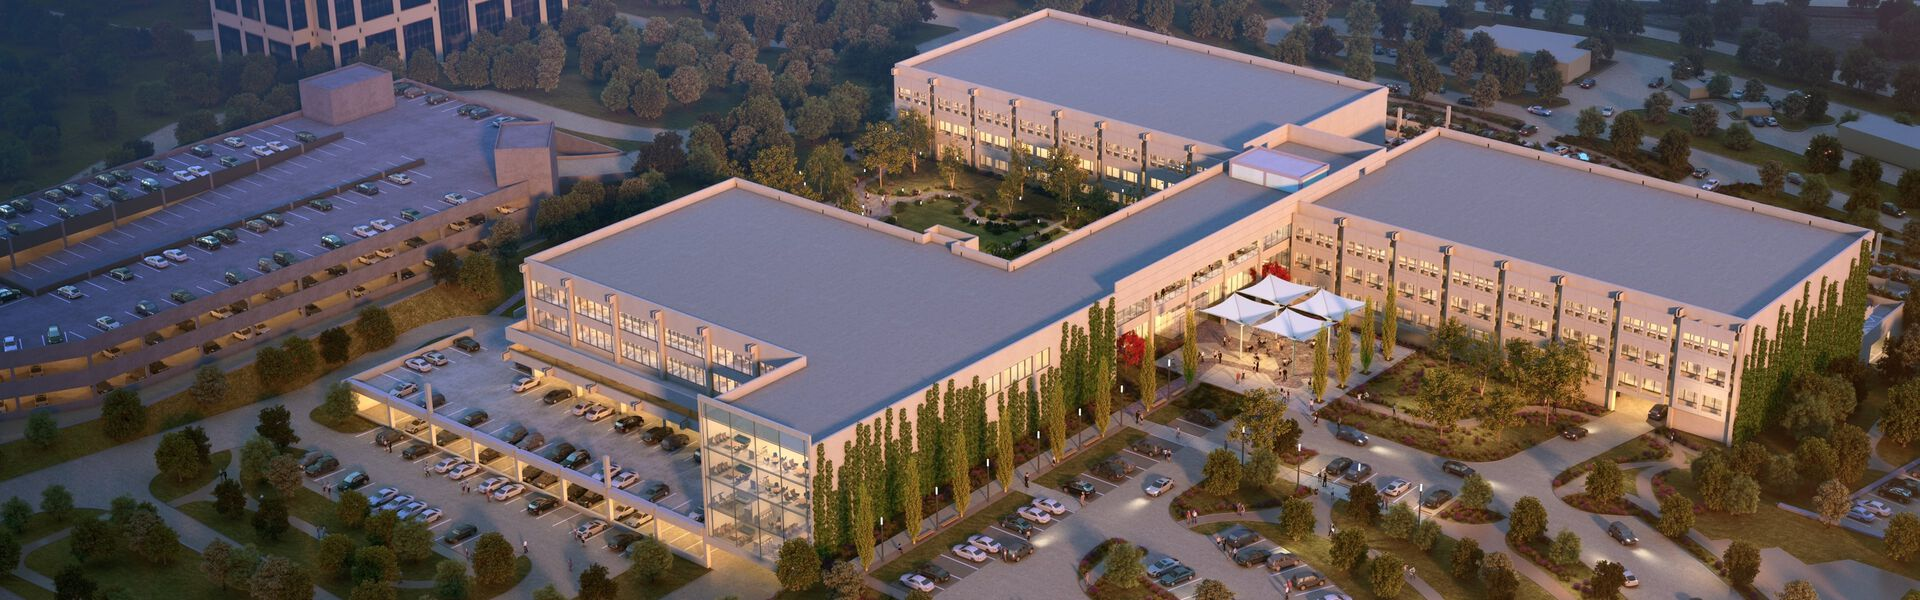 exterior of the Las Colinas location as seen from above, with lush outdoor spaces and a modern feel